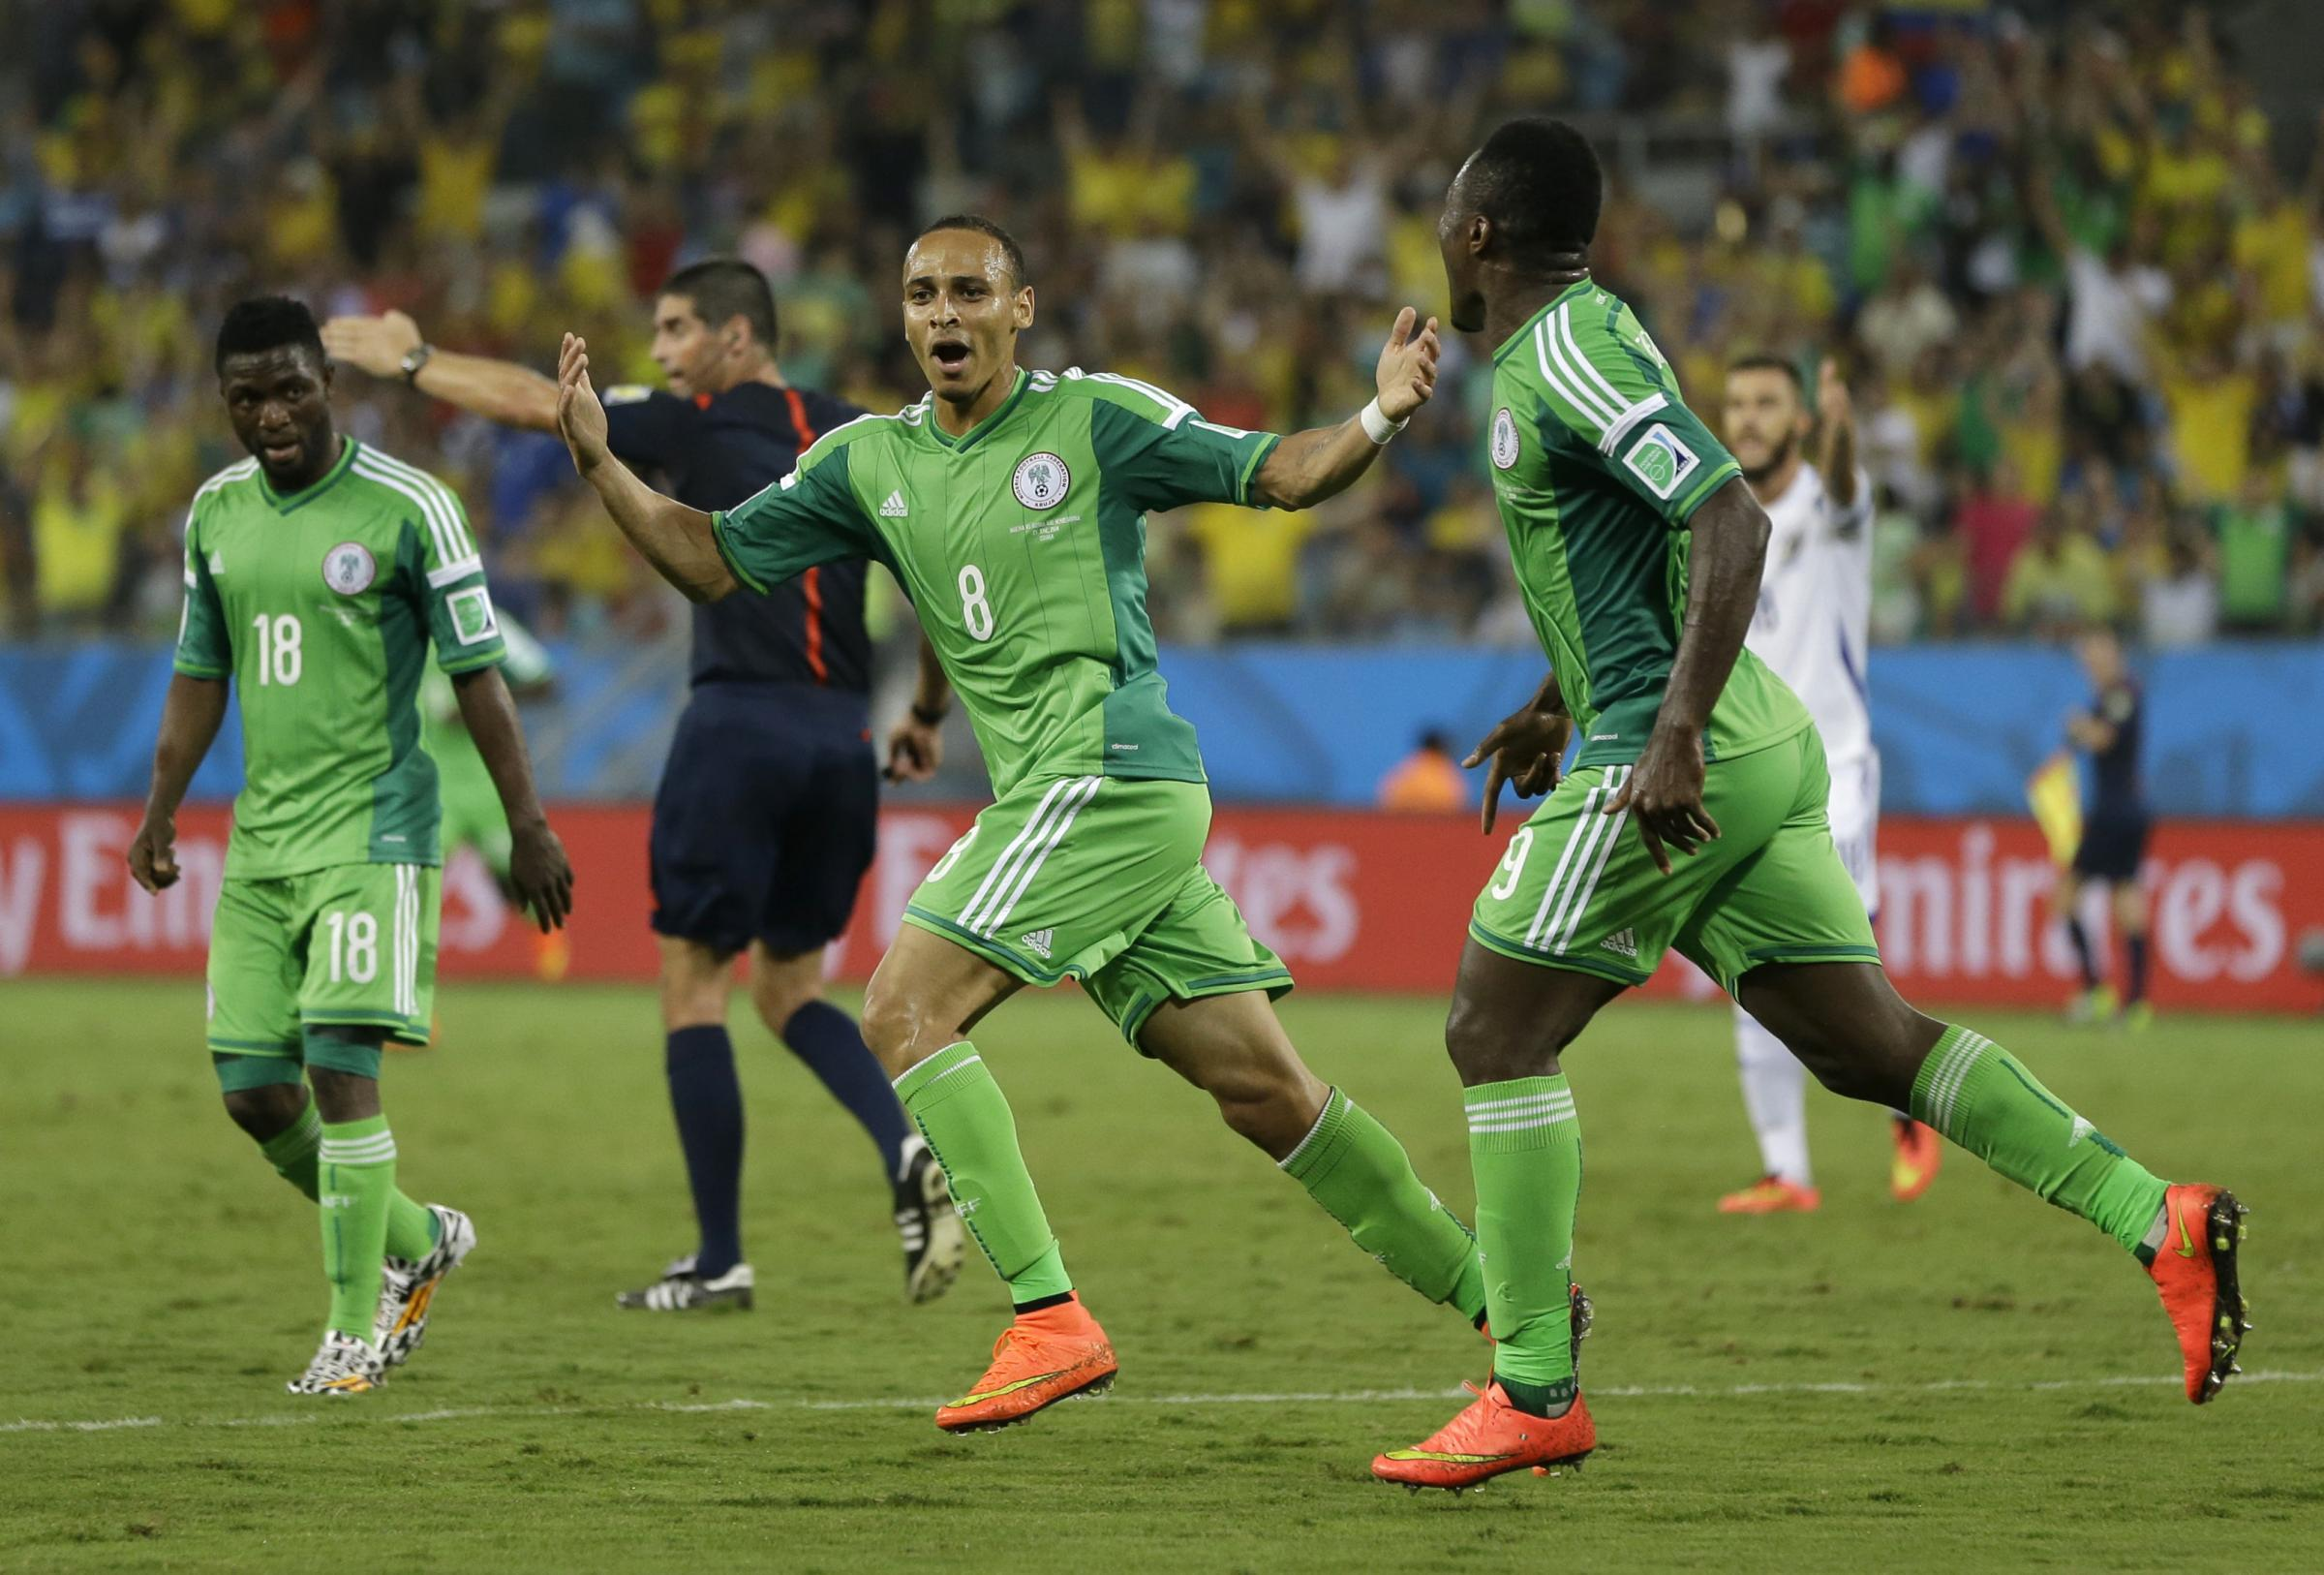 WINNING STRIKE: Nigeria's Peter Odemwingie celebrates after scoring the only goal of the game against Bosnia